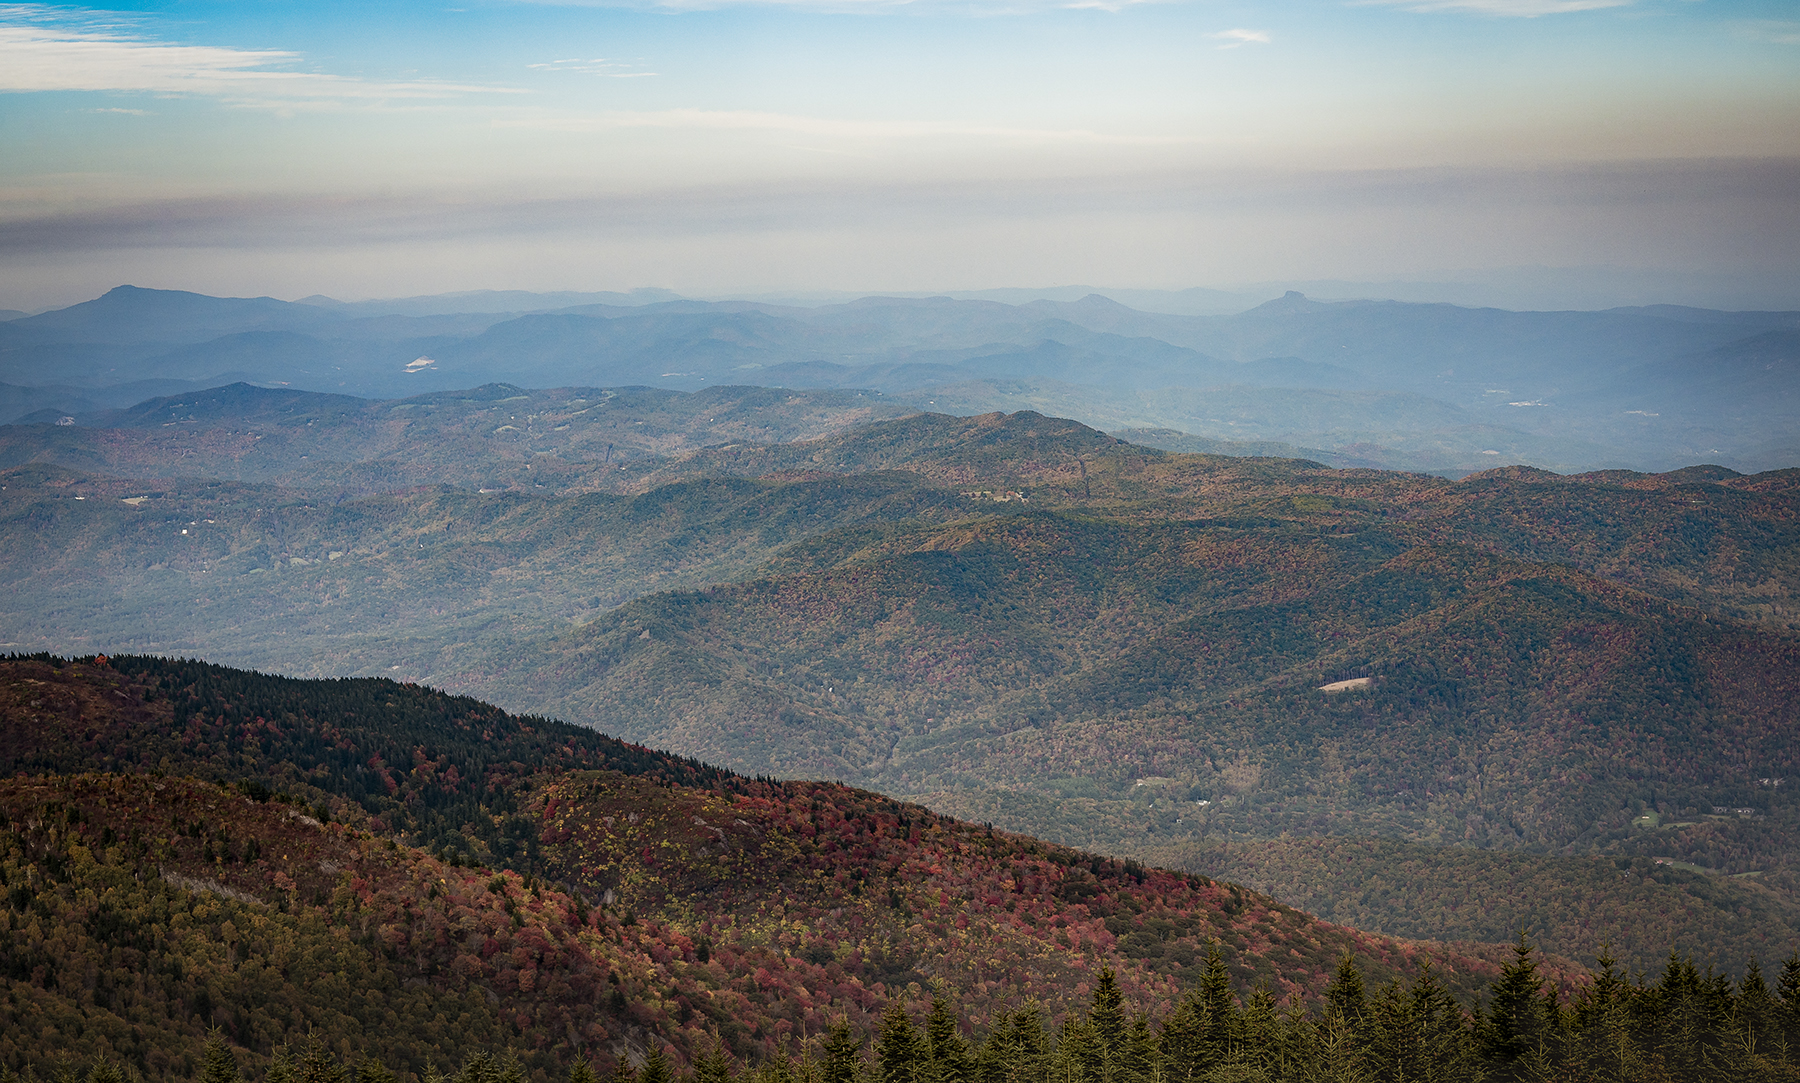 Landscape Photography captured by TOMO Pictures in Asheville, NC during Fall 2020